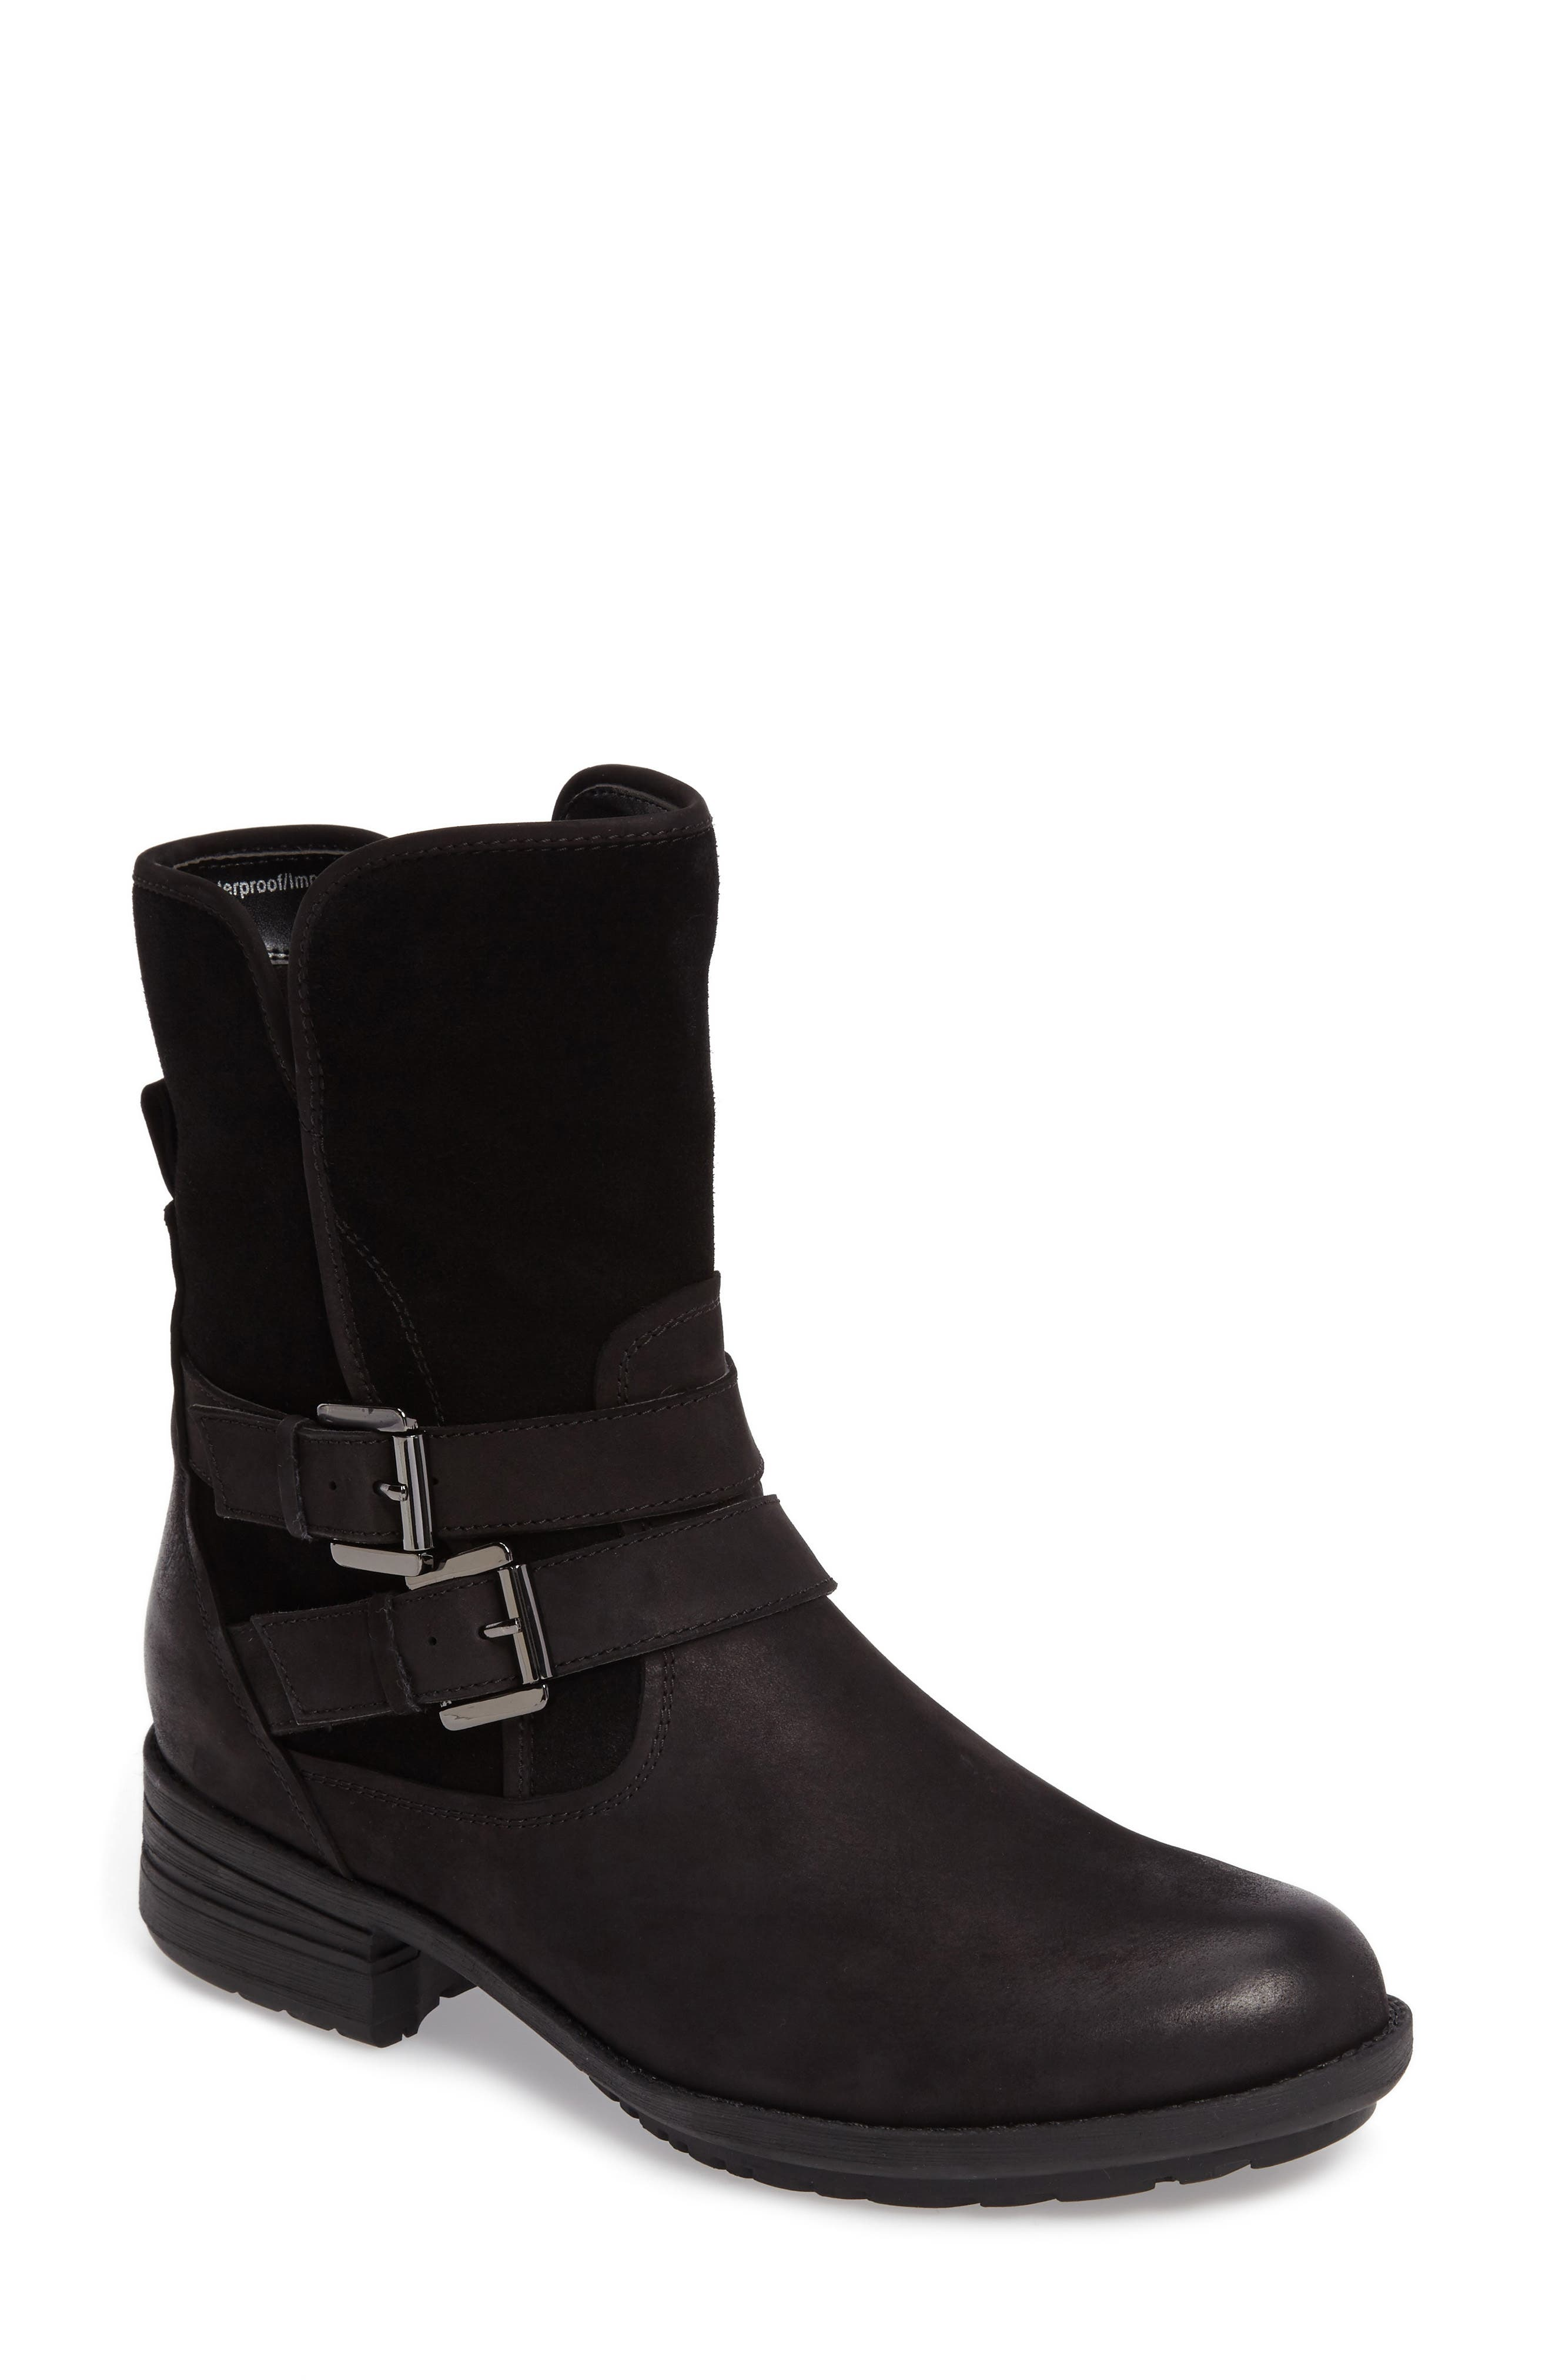 Tula Waterproof Boot,                         Main,                         color, 015